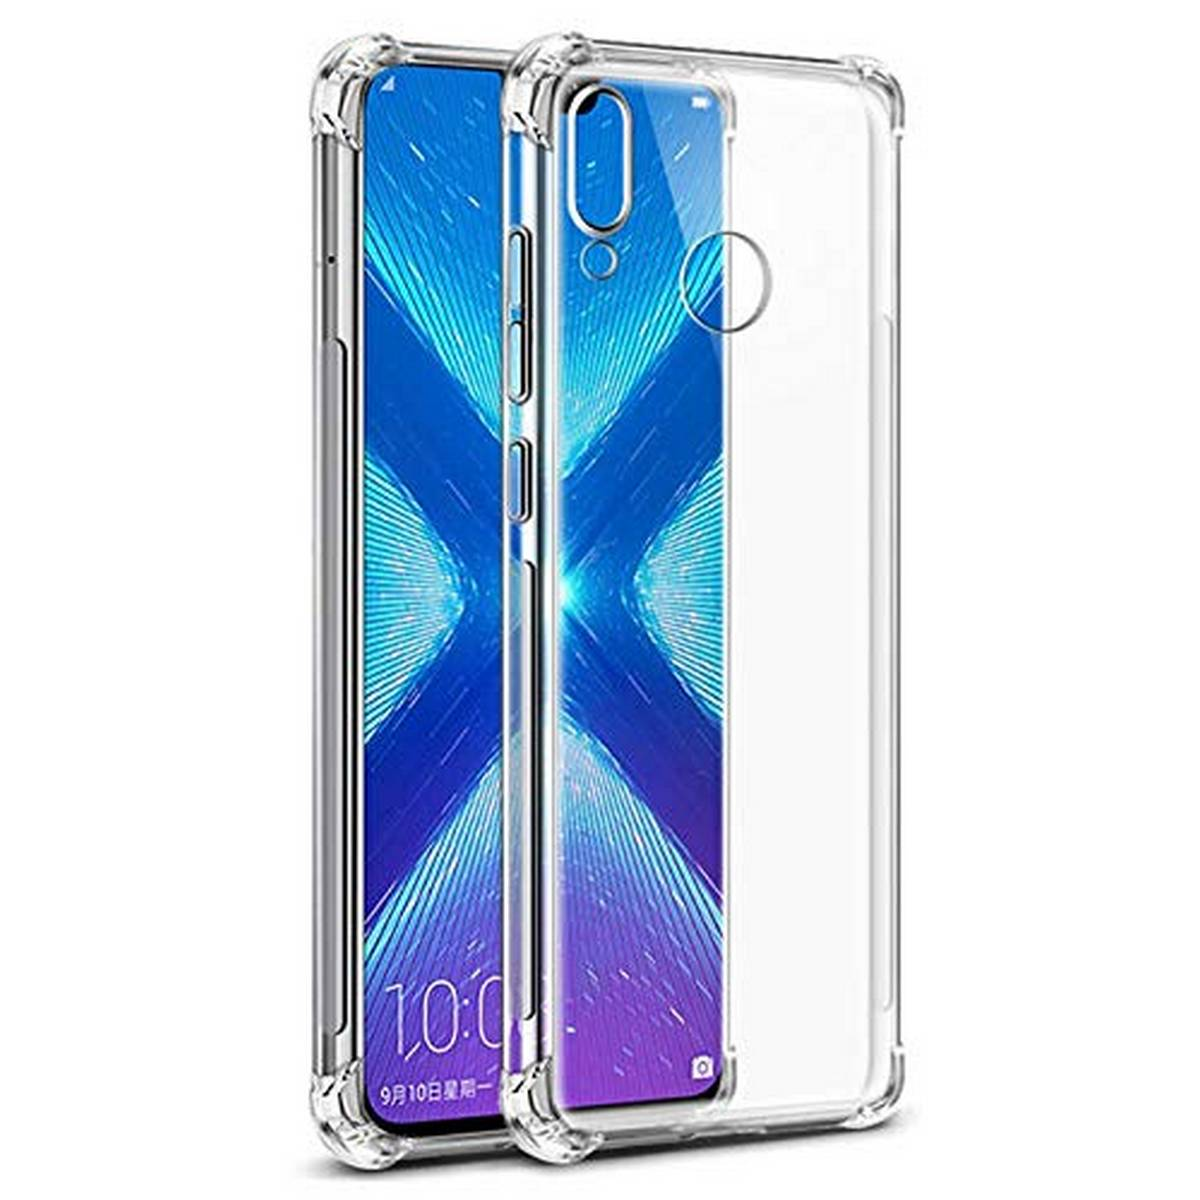 Huawei Honor 8X Airbag Case Anti Shock and Anti-Scratch Resistant Clear View Transparent Silicone Back Cover